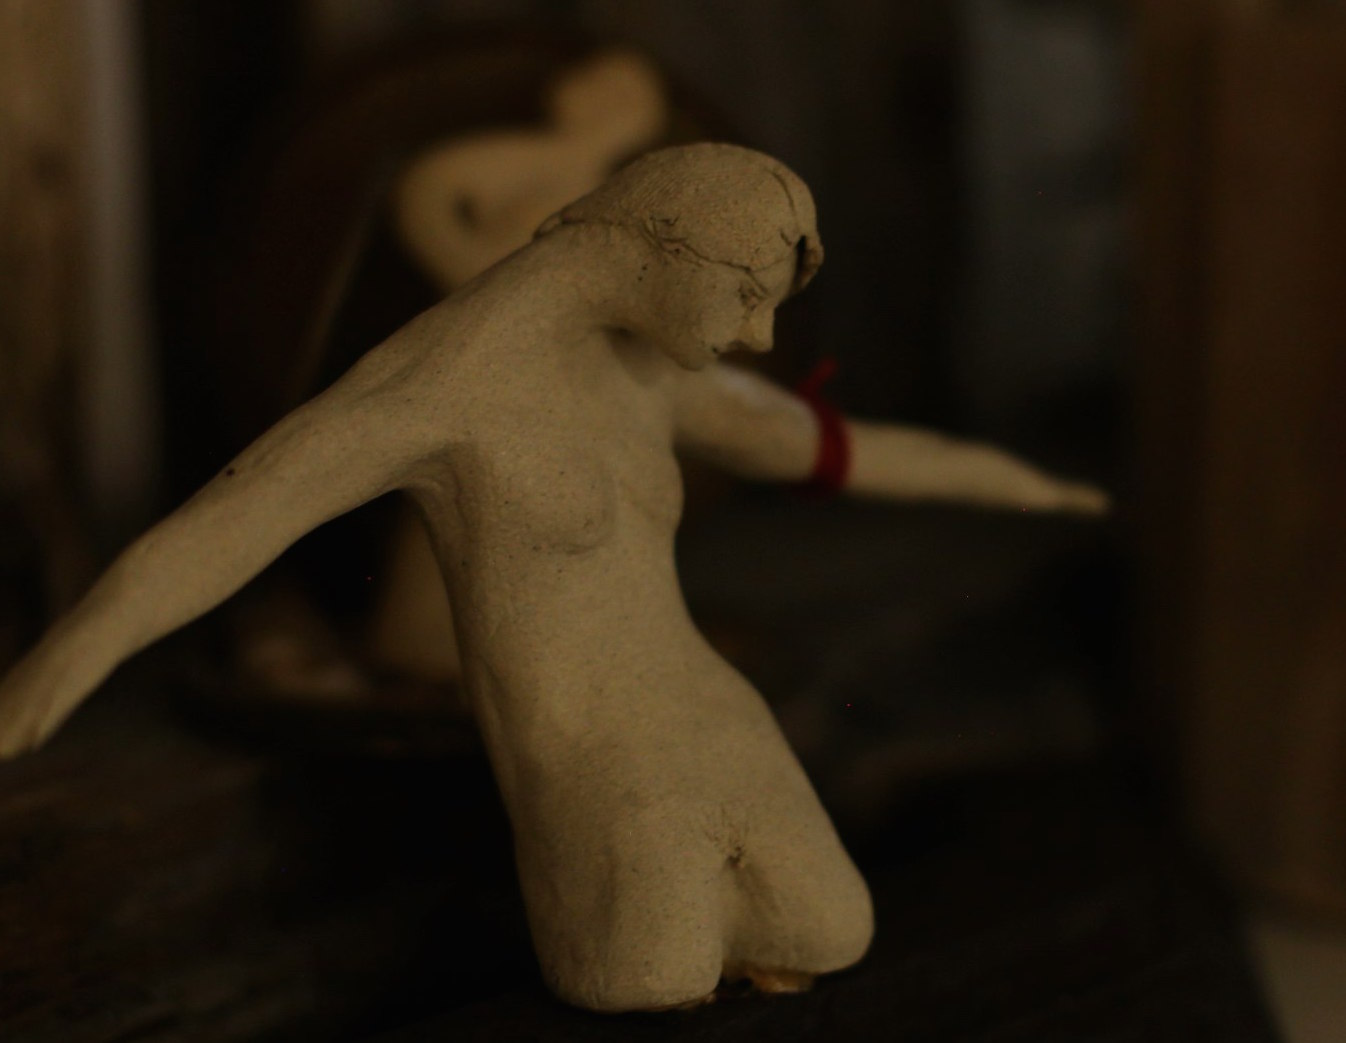 close up of a small fragmented ceramic figure